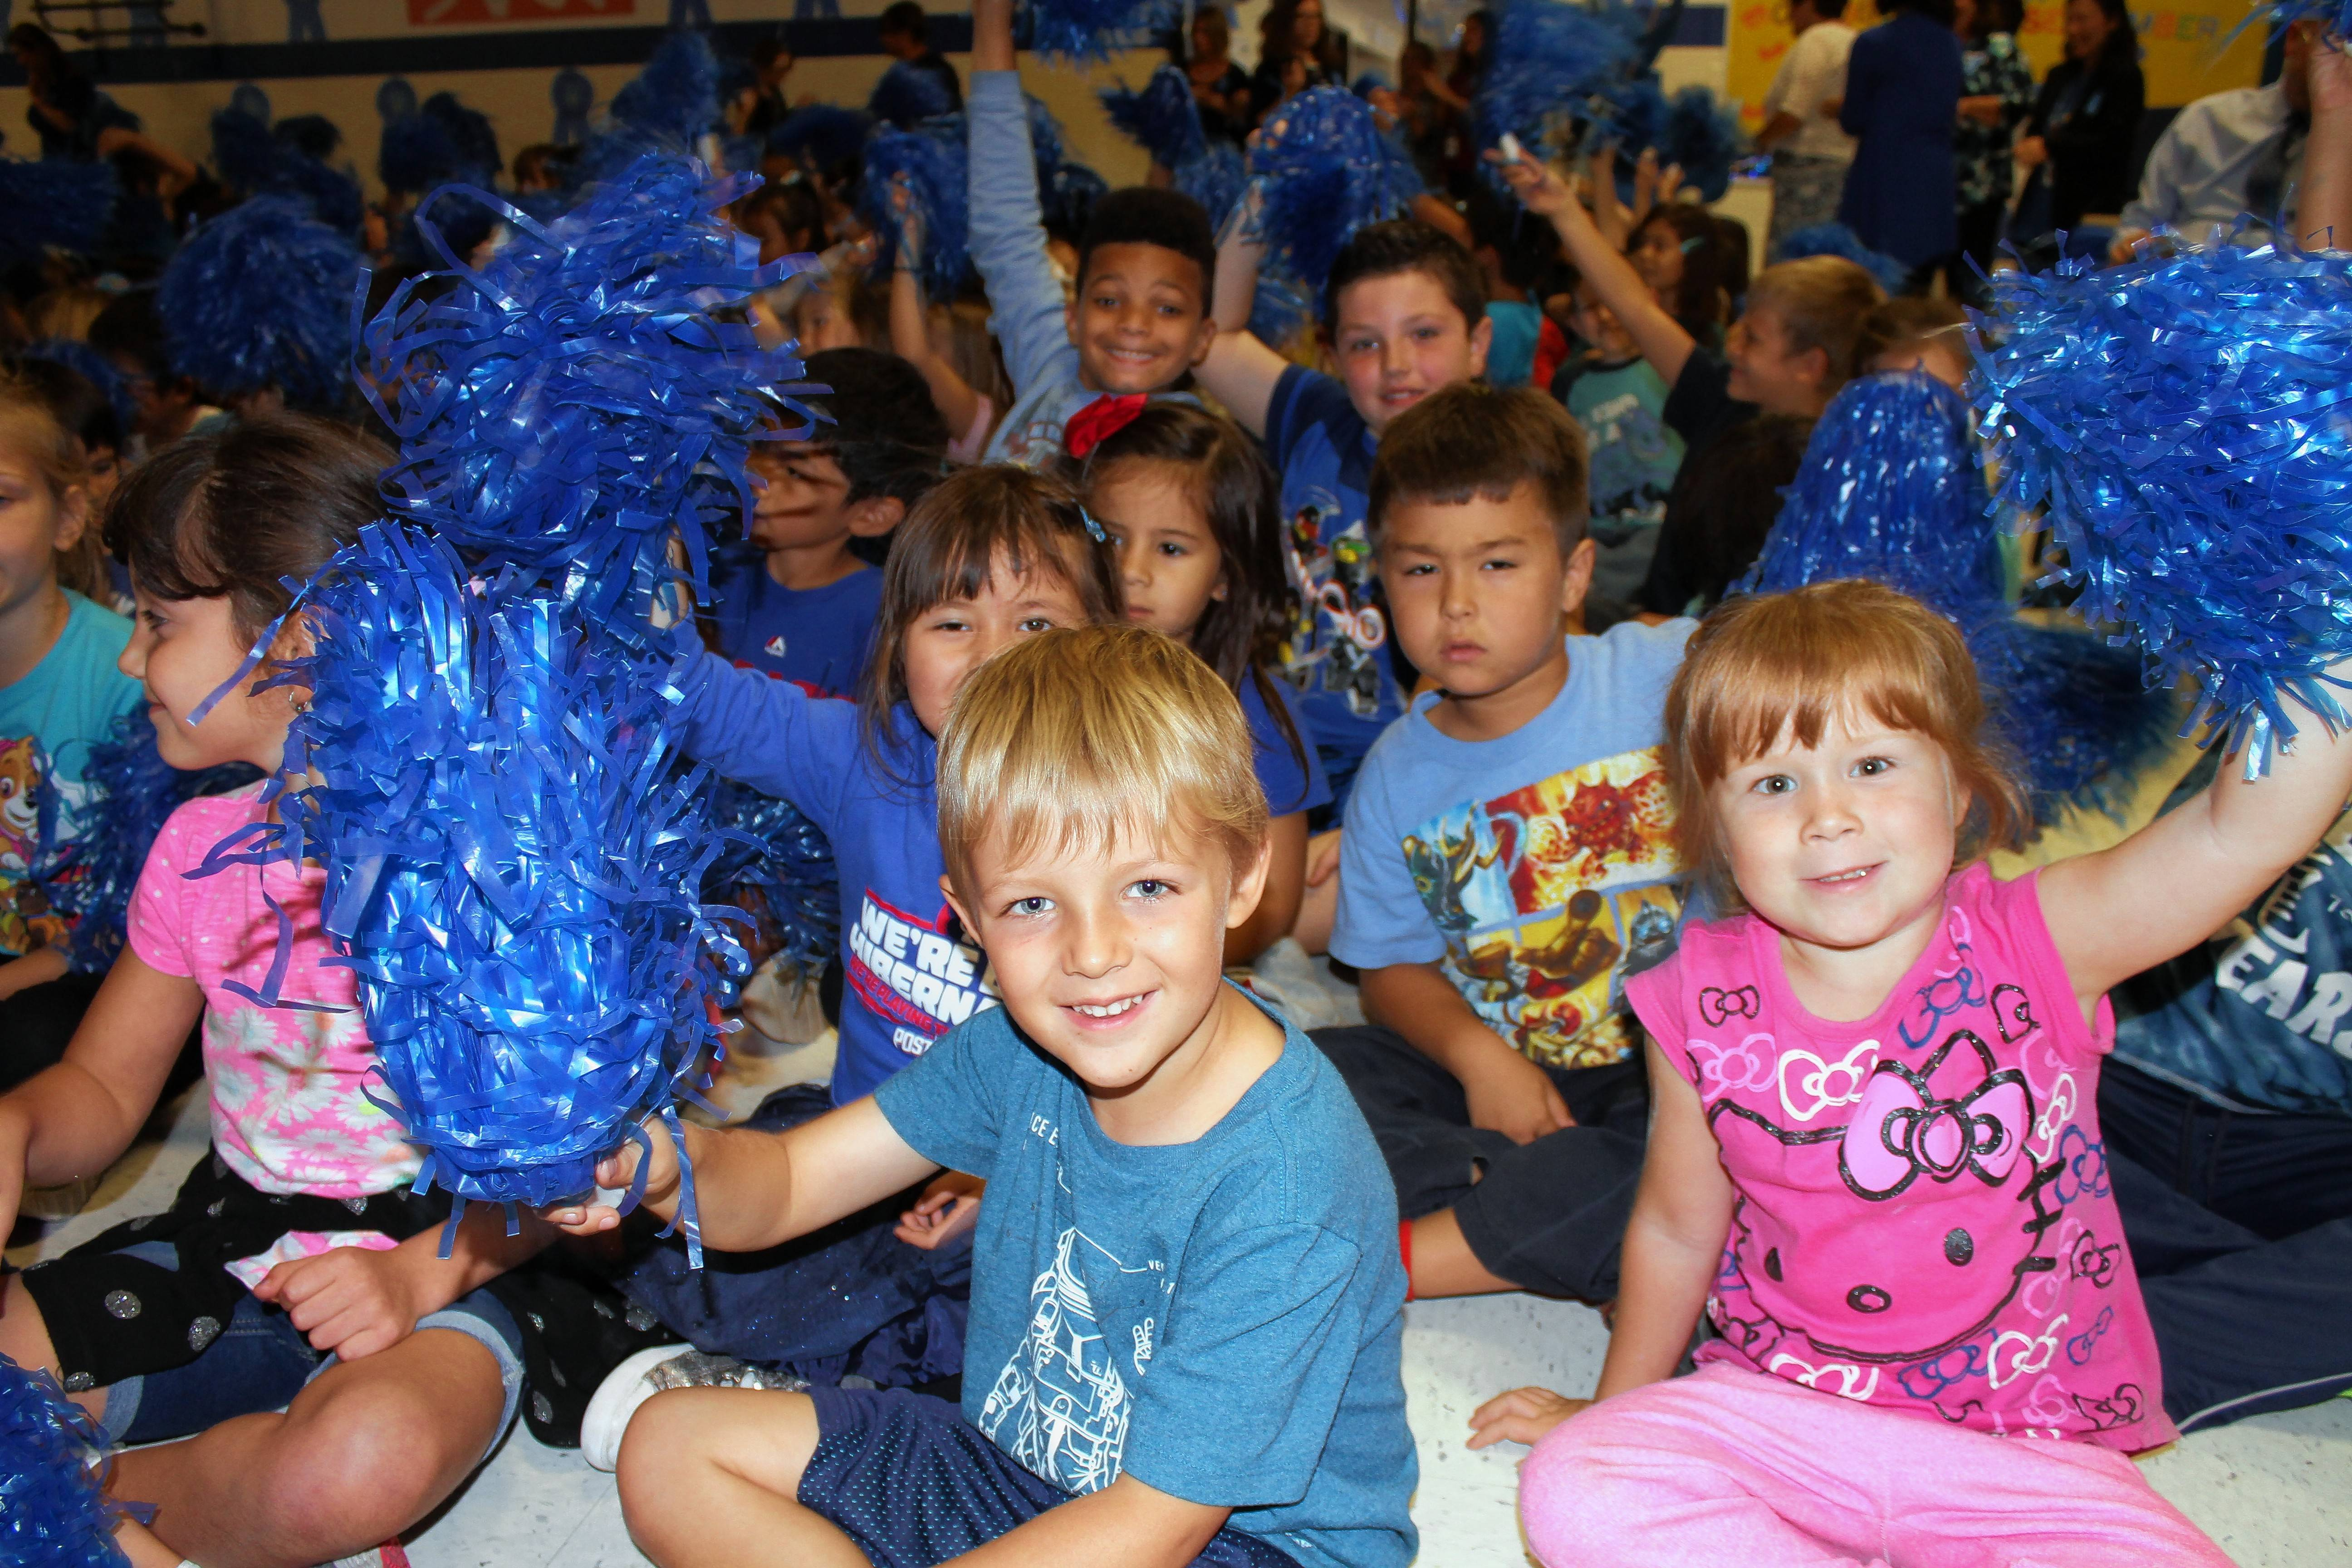 Students at Thomas Dooley Elementary School in Schaumburg celebrate its being named a 2017 National Blue Ribbon School during an all-school assembly Thursday afternoon.